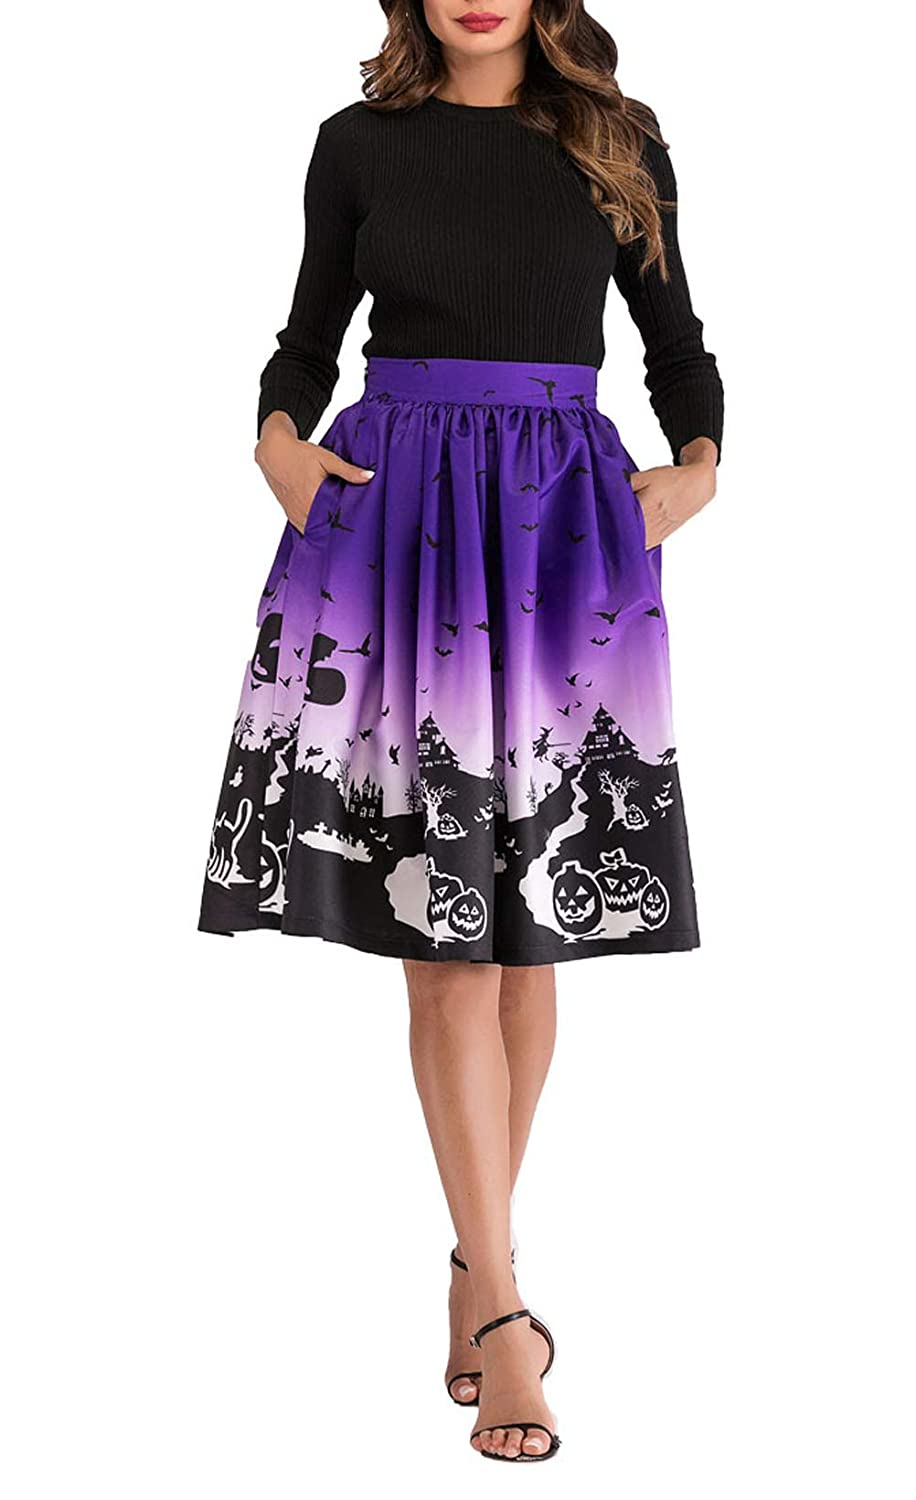 90e29bdd90 Hanlolo Women's Midi Skirts High Waisted 3D Print A-Line Cocktail Party  Prom Skirt with Pocket at Amazon Women's Clothing store: